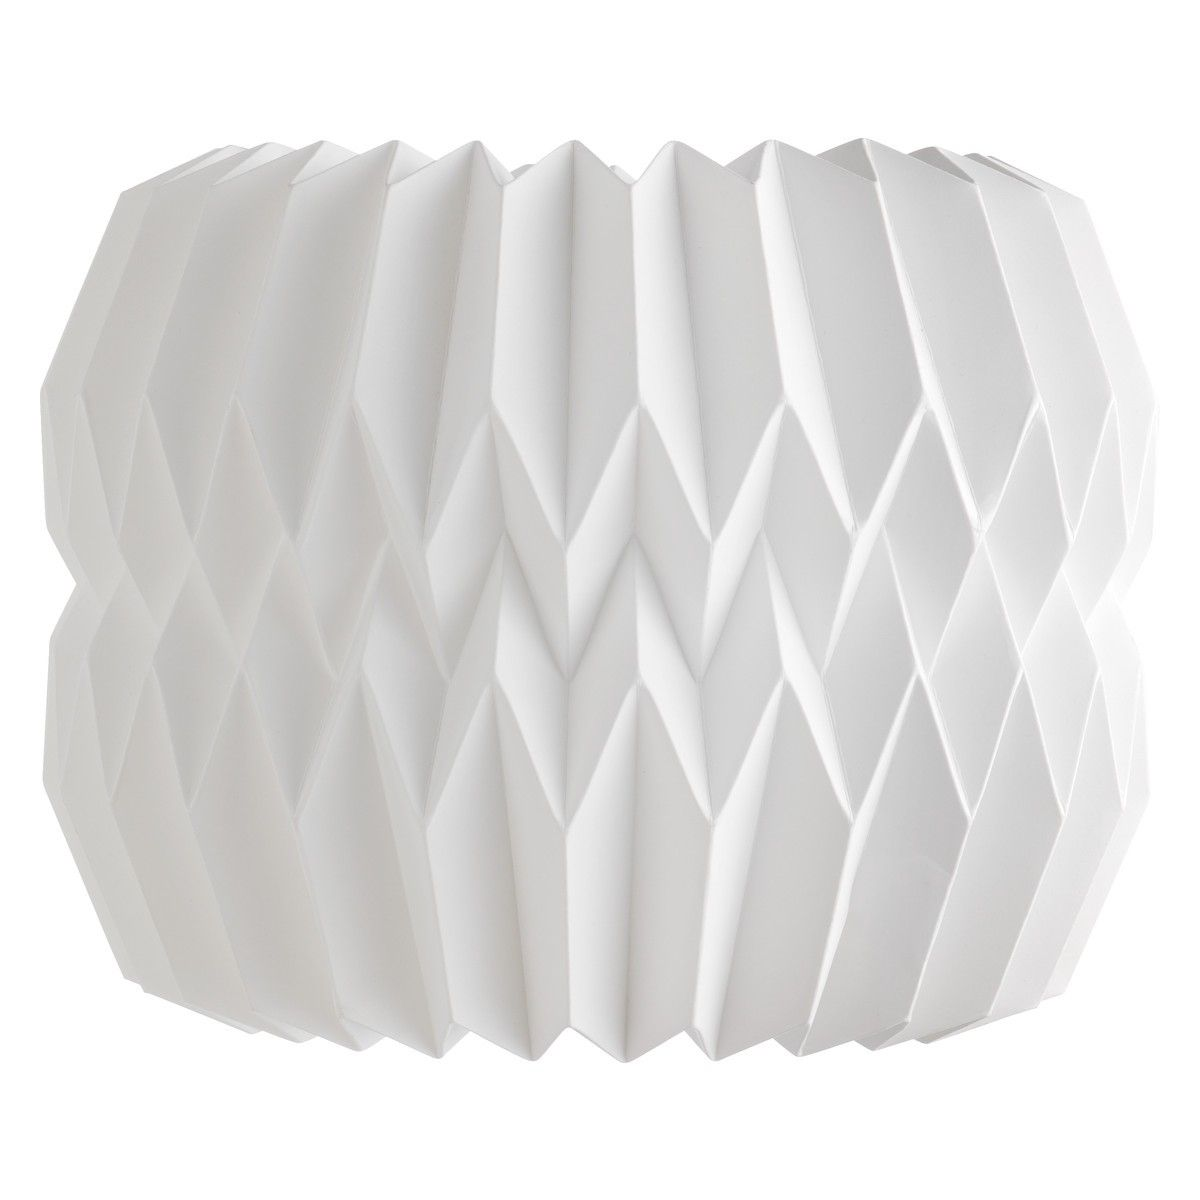 KURA Small white lampshade